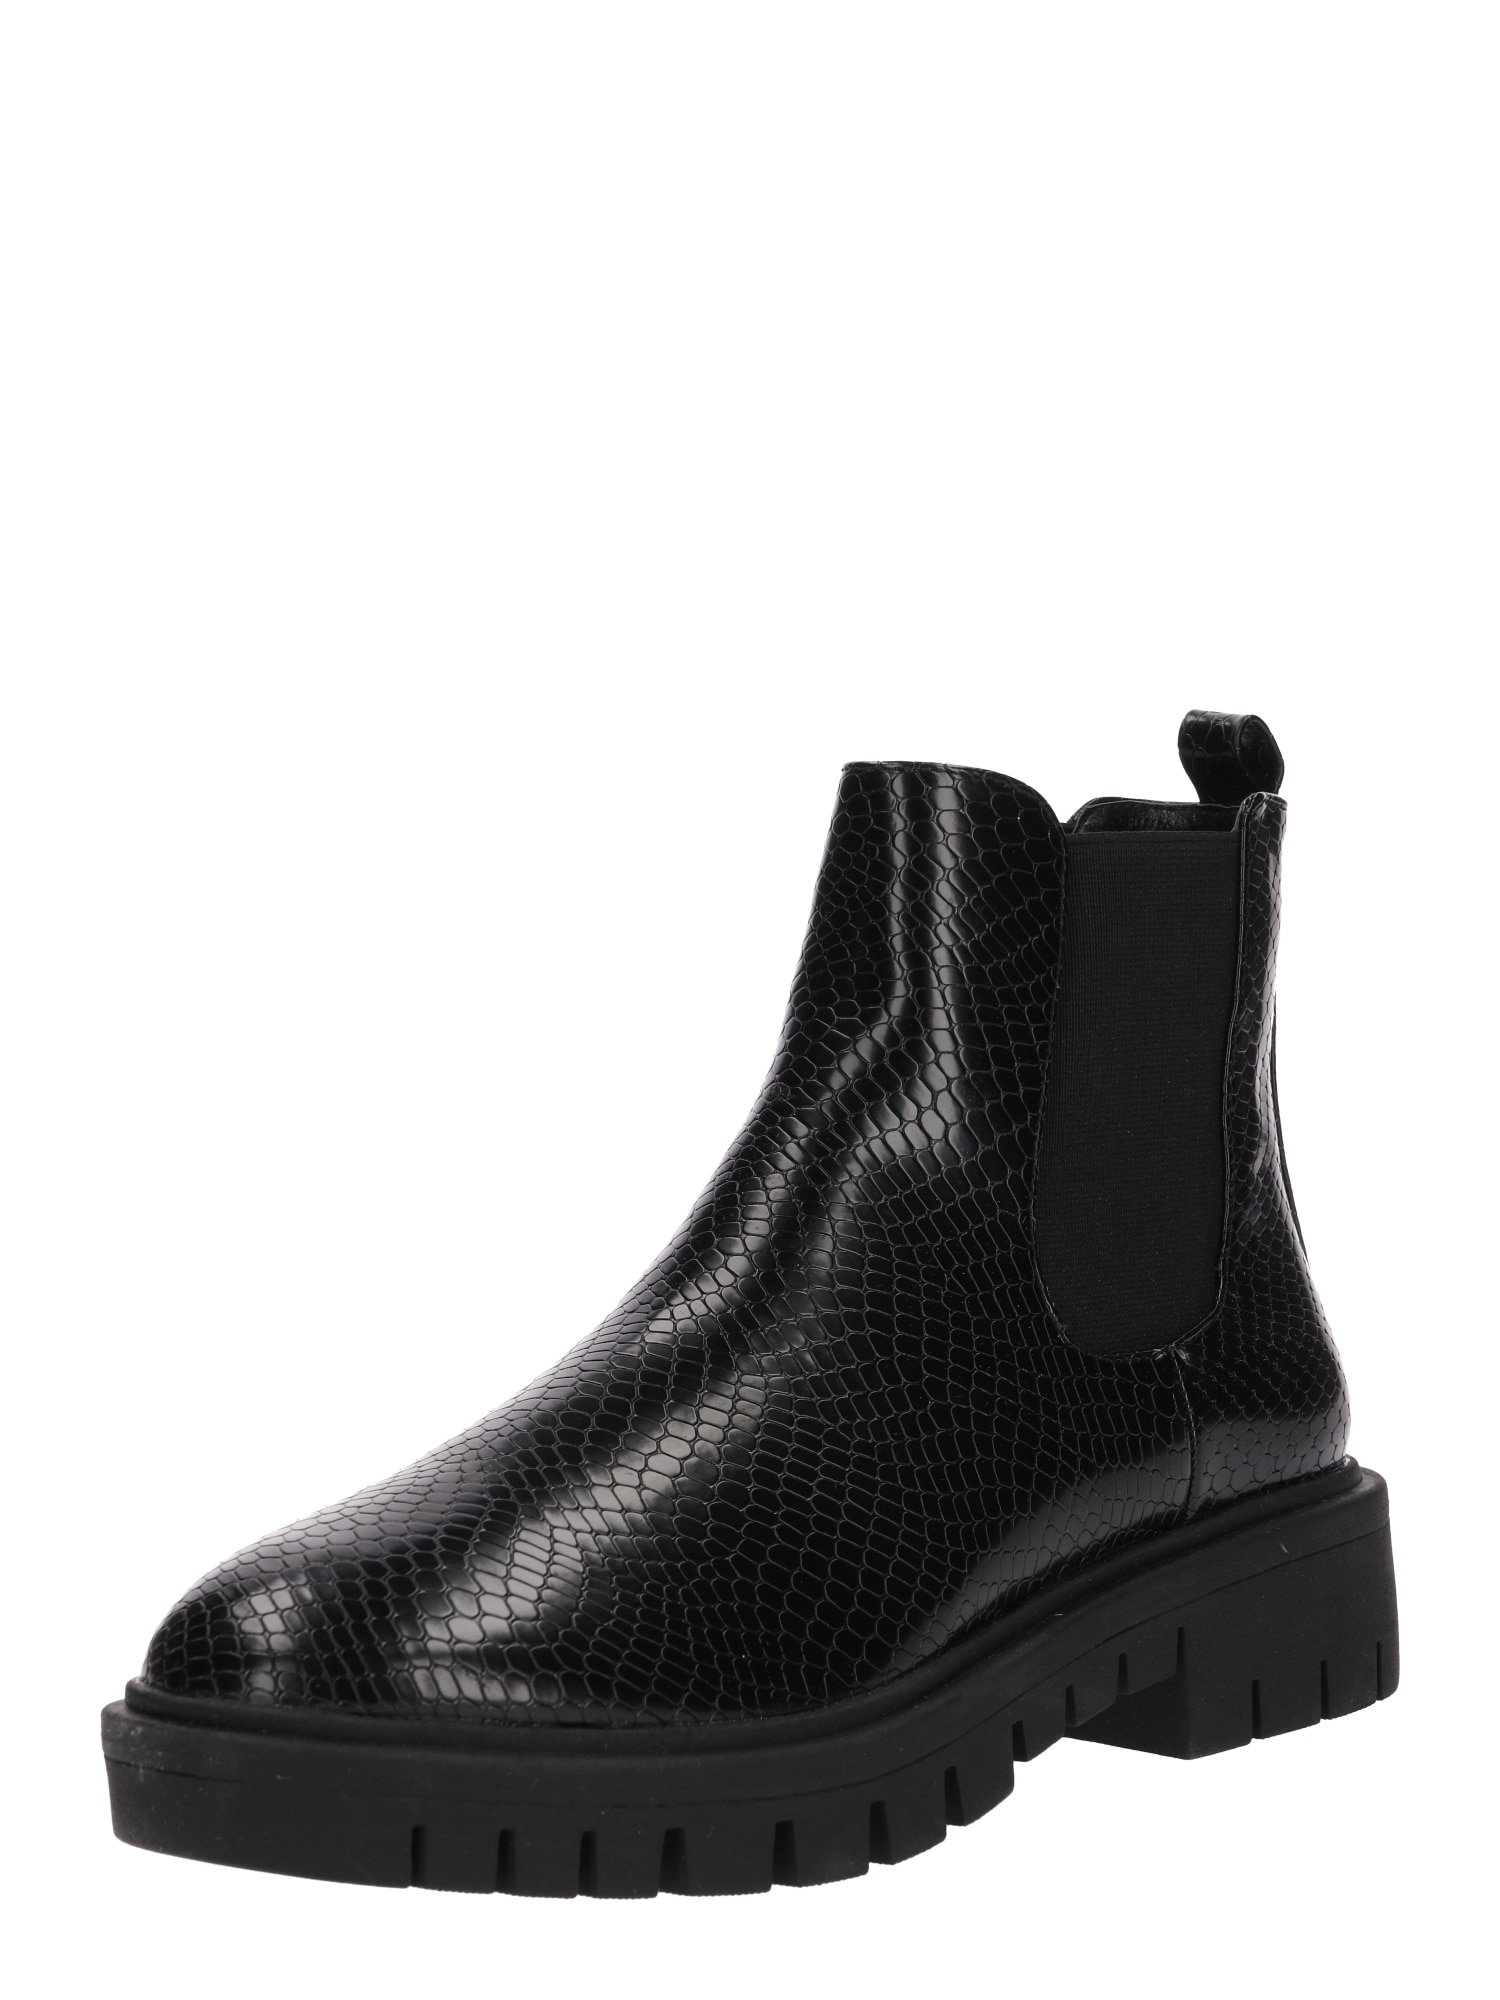 Chelsea boty JETT TEXTURED CLEAT CHELSEA BOOT černá Lost Ink